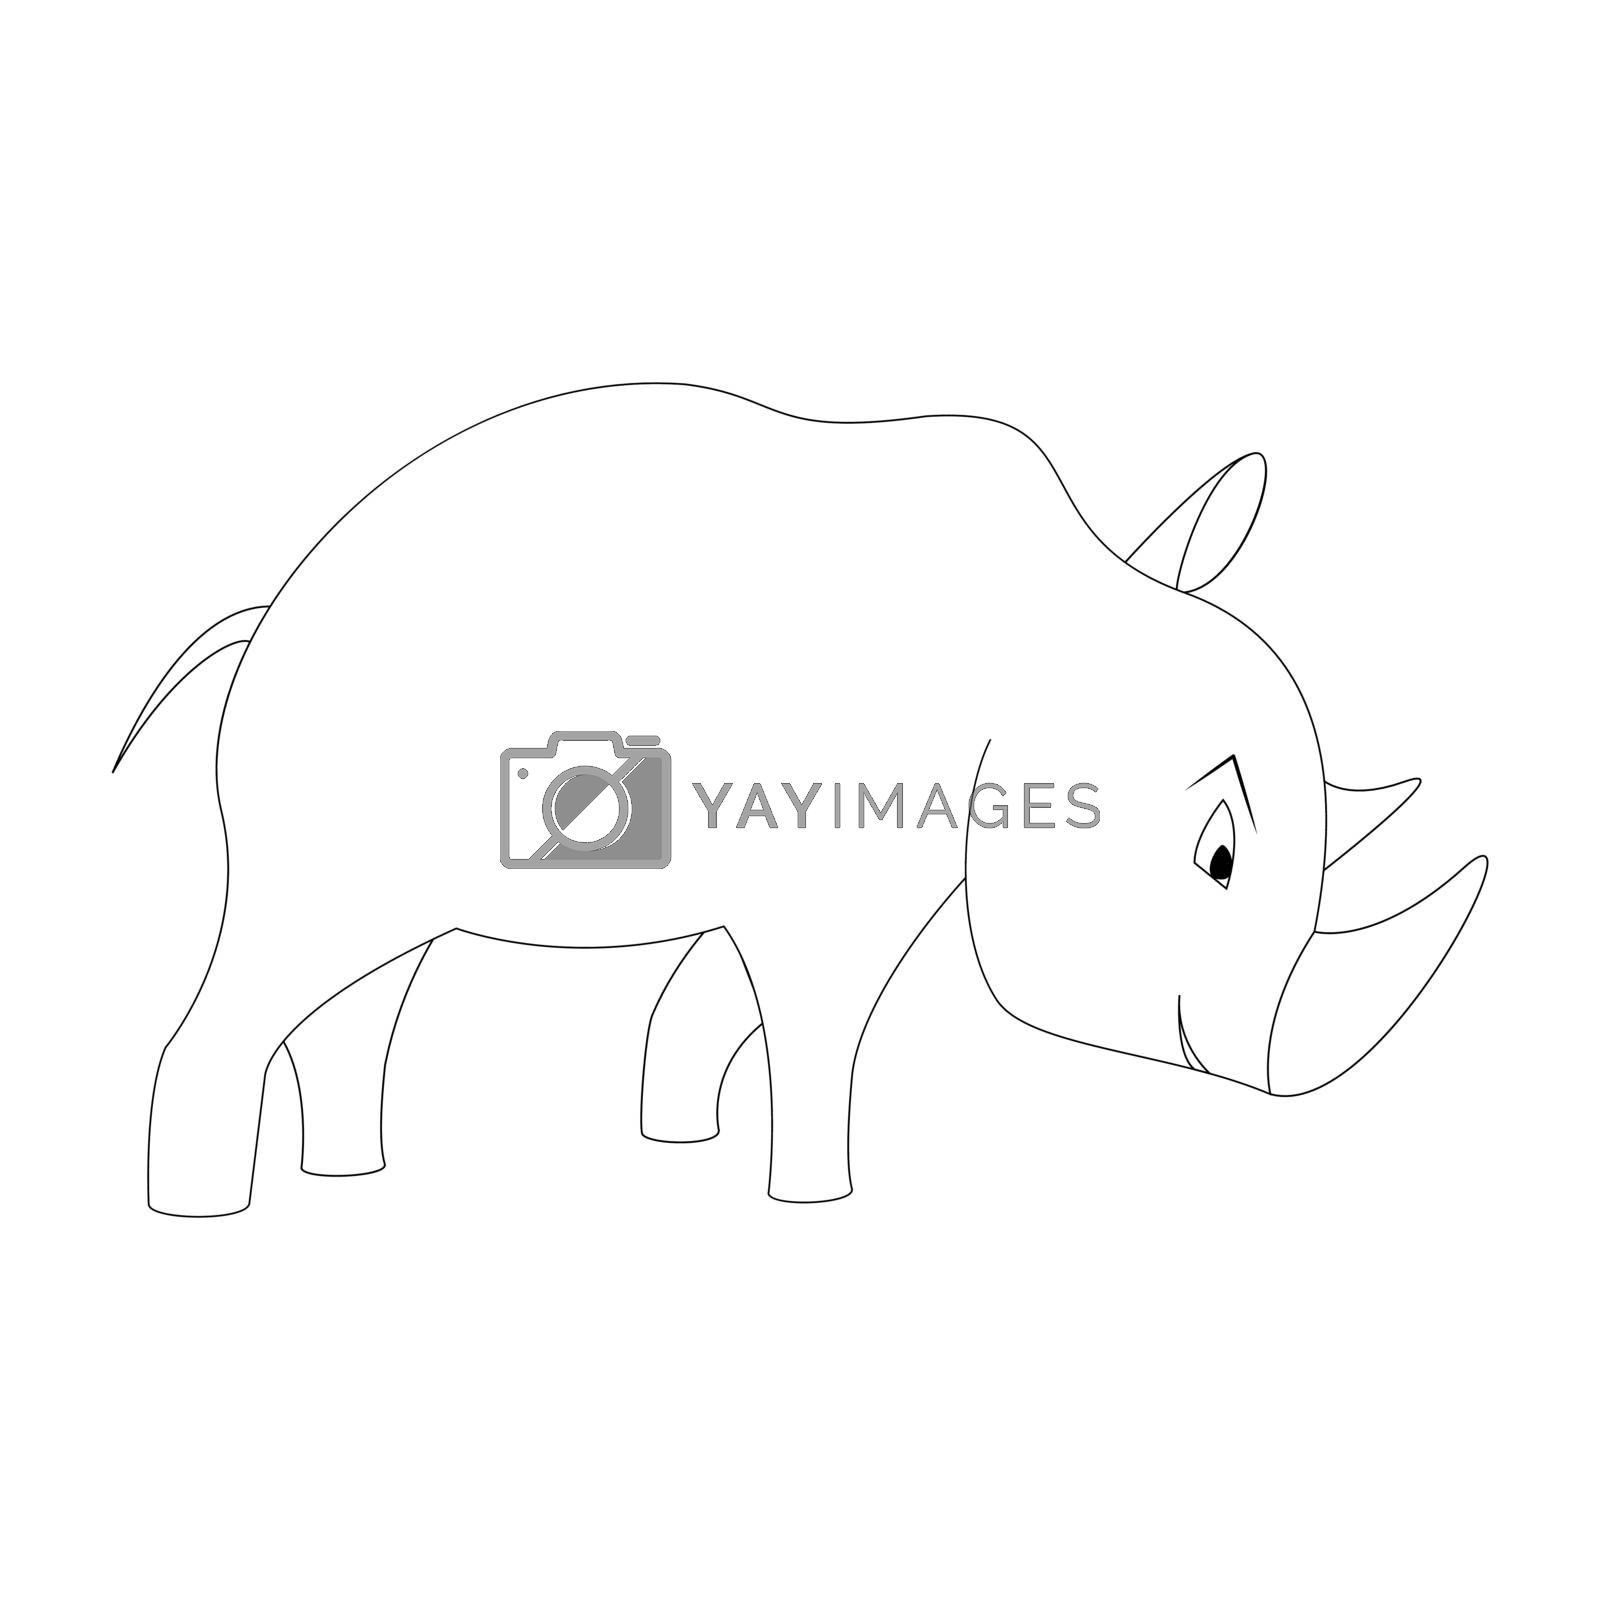 Cartoon rhinoceros outline. Vector illustration isolated on white background. Decoration for greeting cards, posters, flyers, prints for clothes.